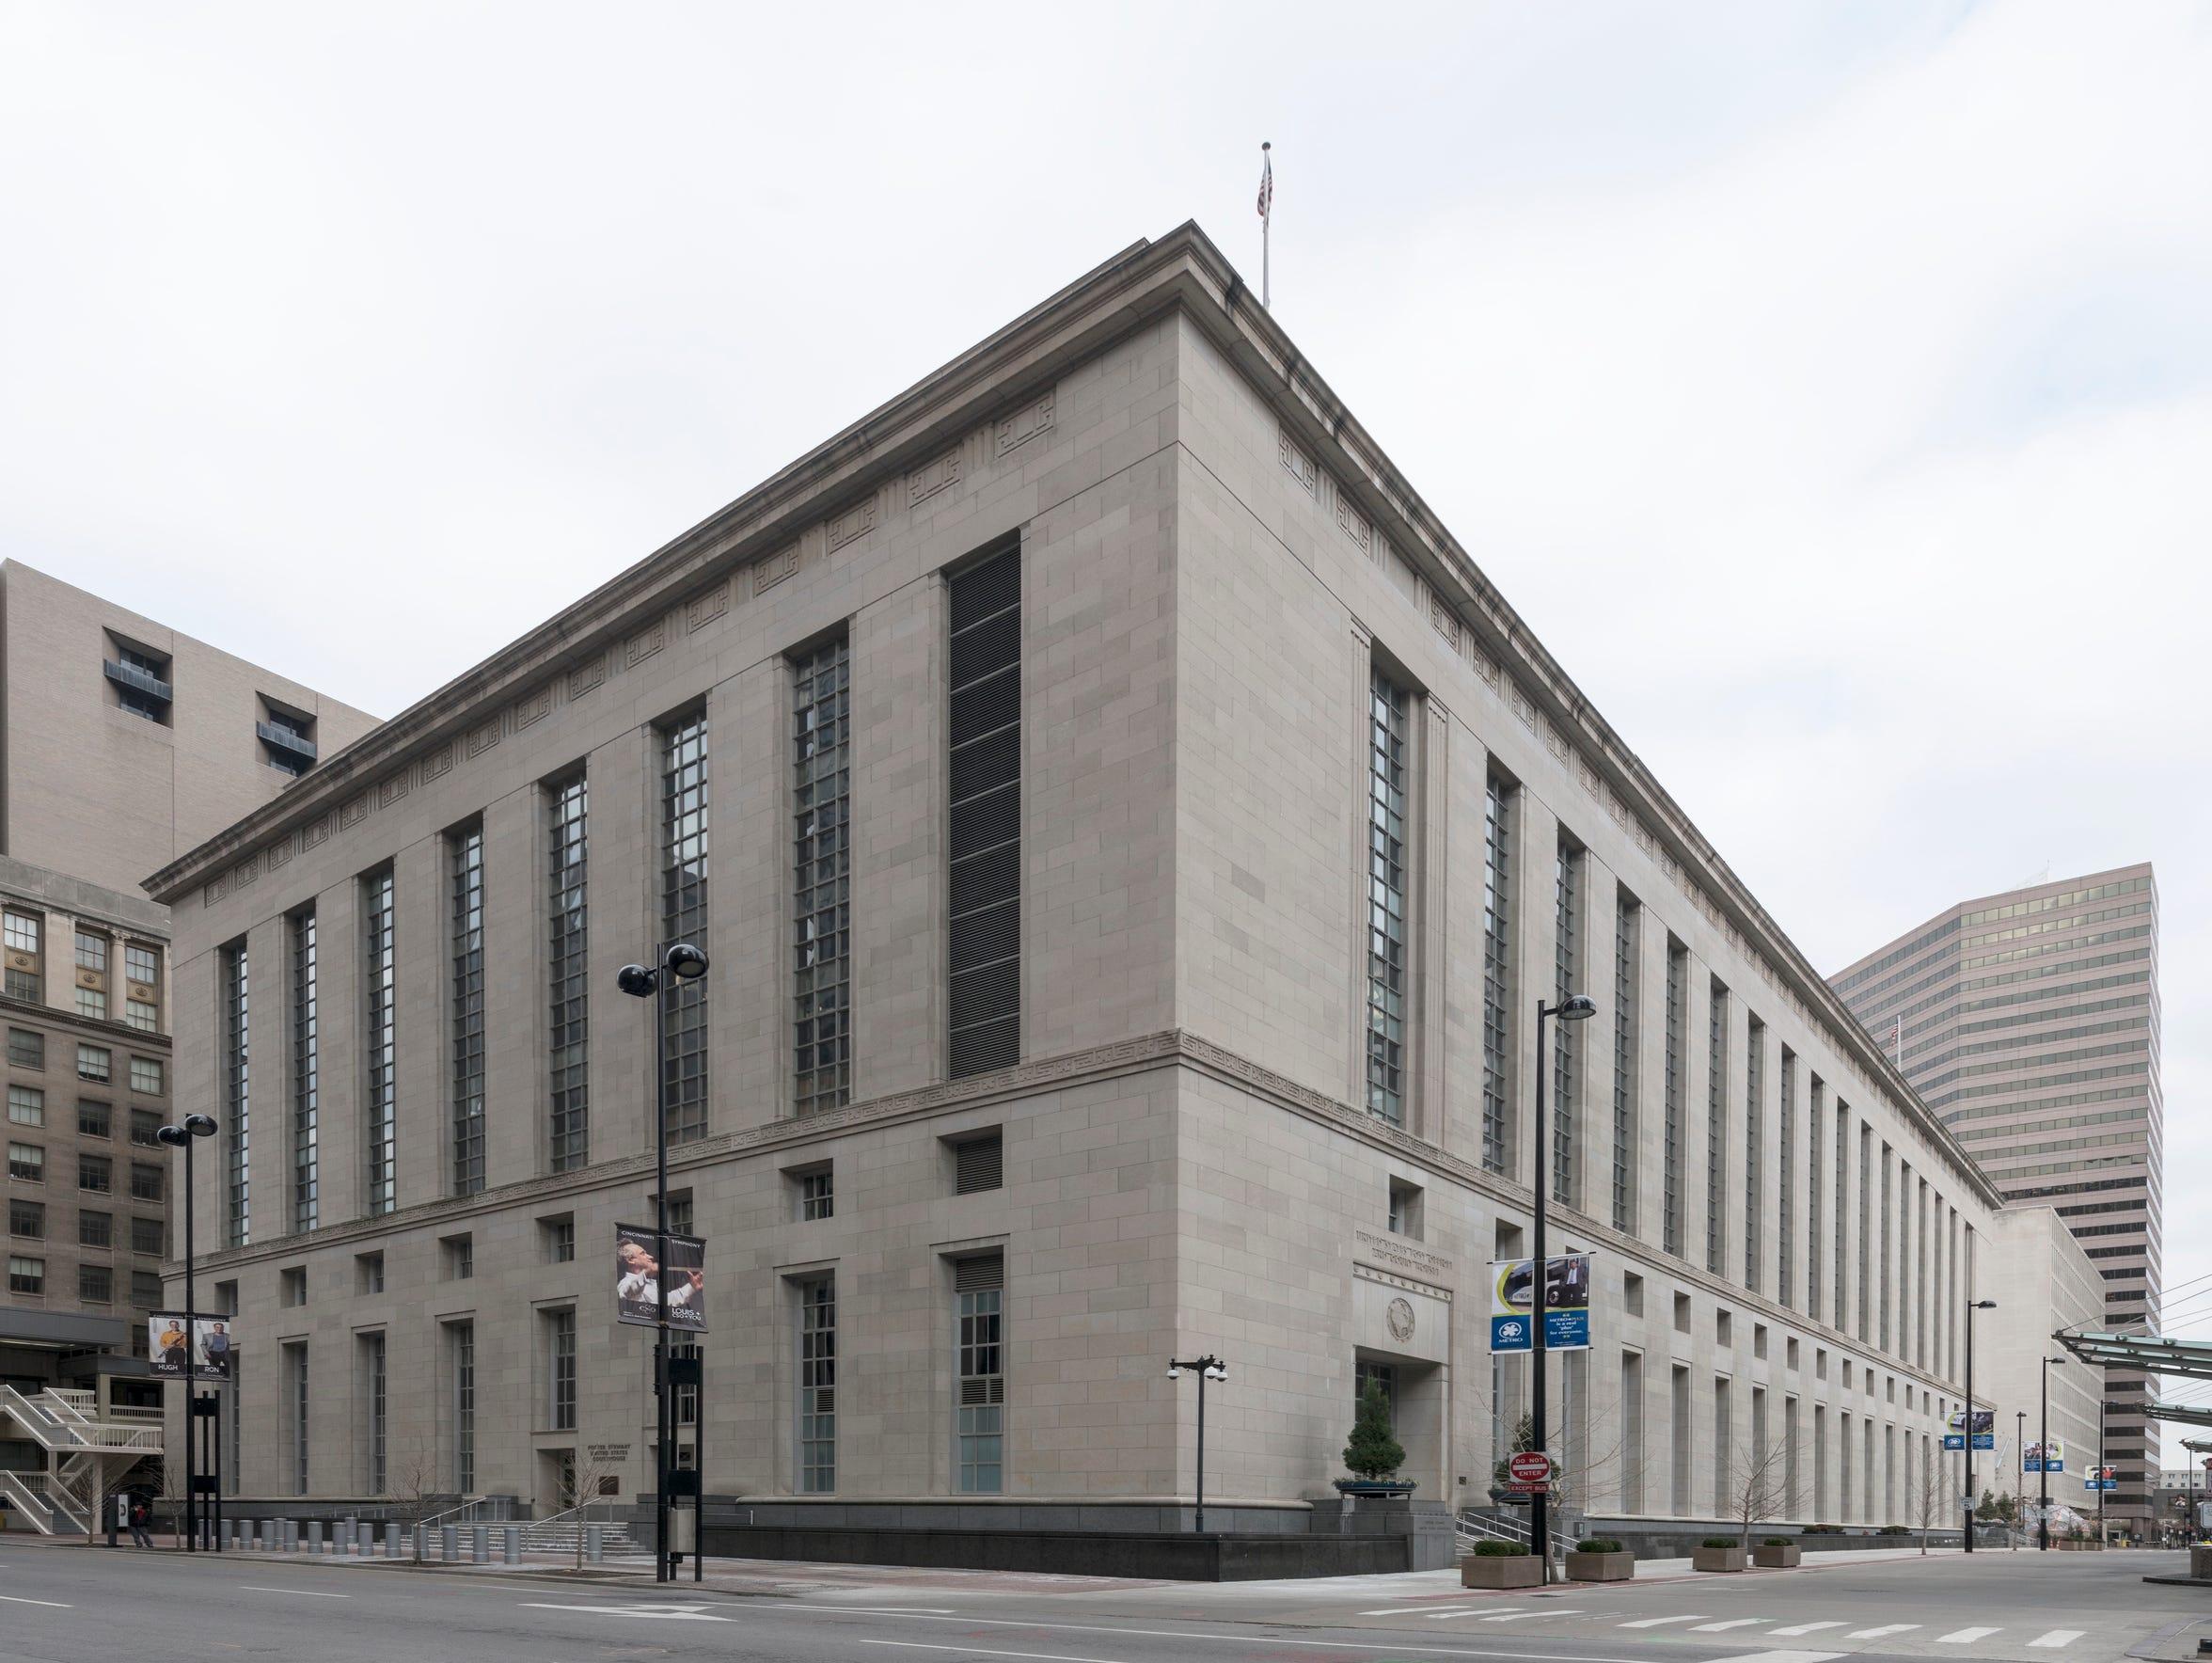 Potter Stewart Courthouse in Cincinnati, Ohio is home